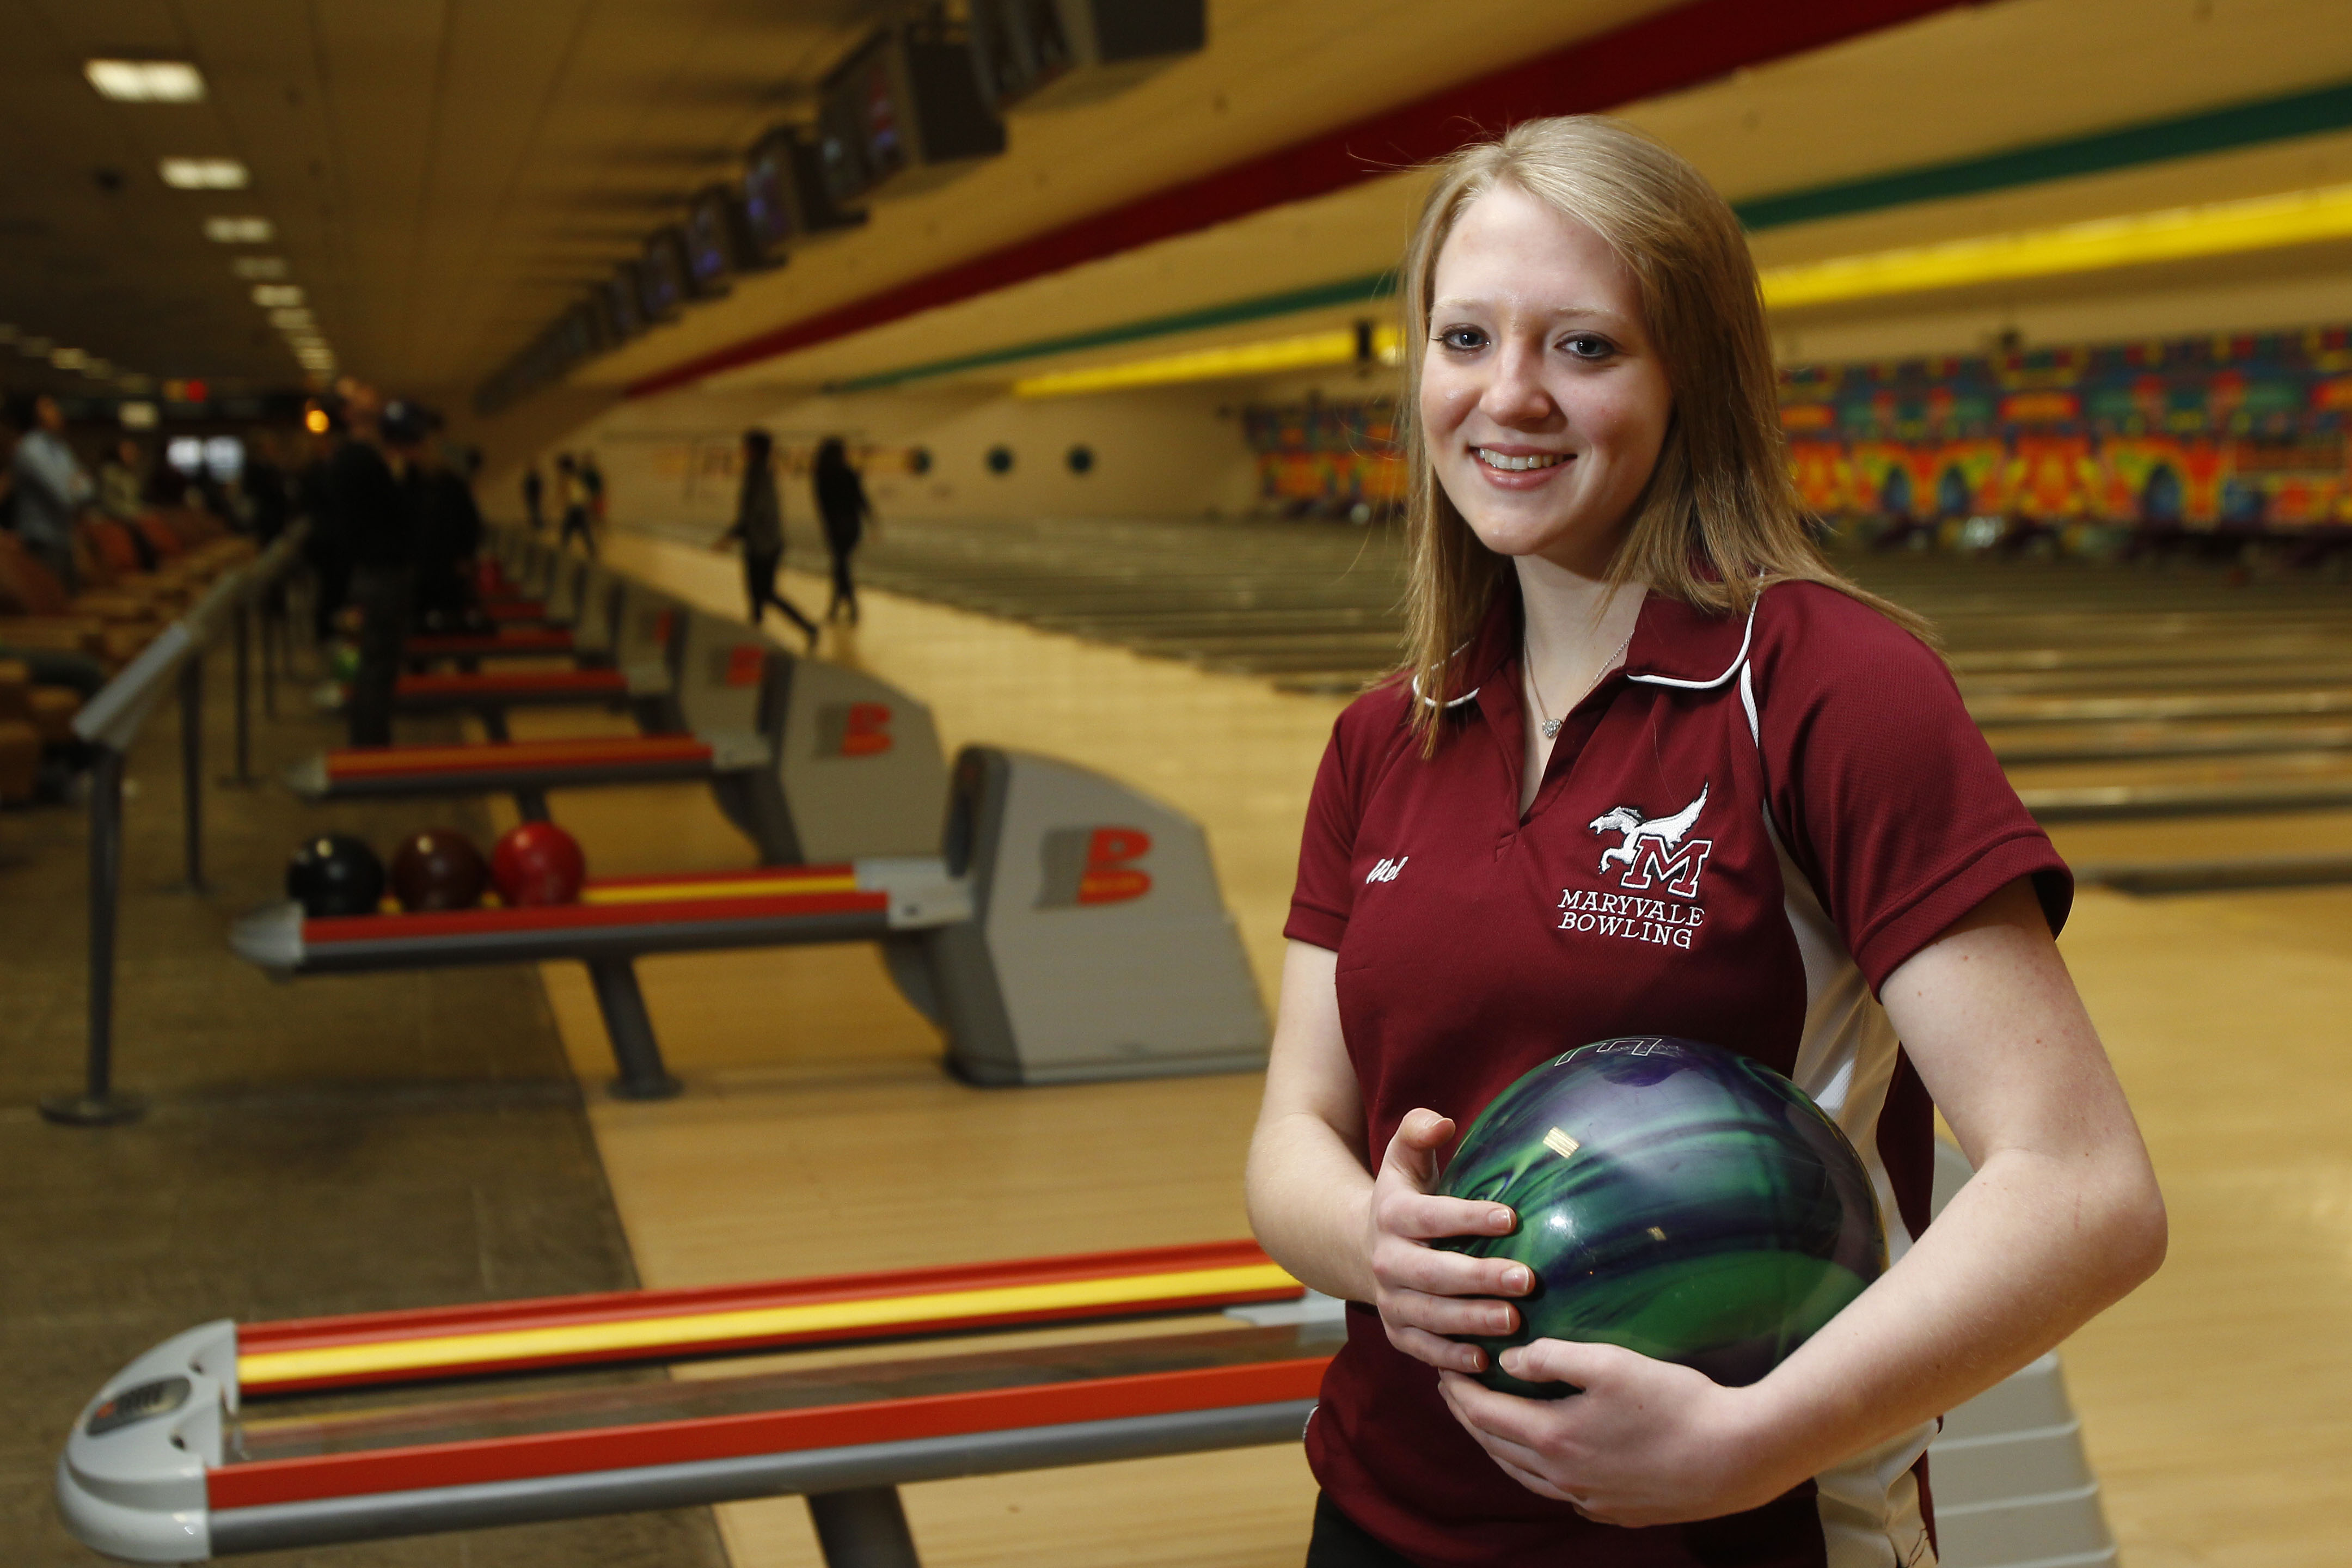 Fairleigh Dickinson's Melanie Hannon, back in the days when she bowled for Maryvale. (Mark Mulville/Buffalo News}